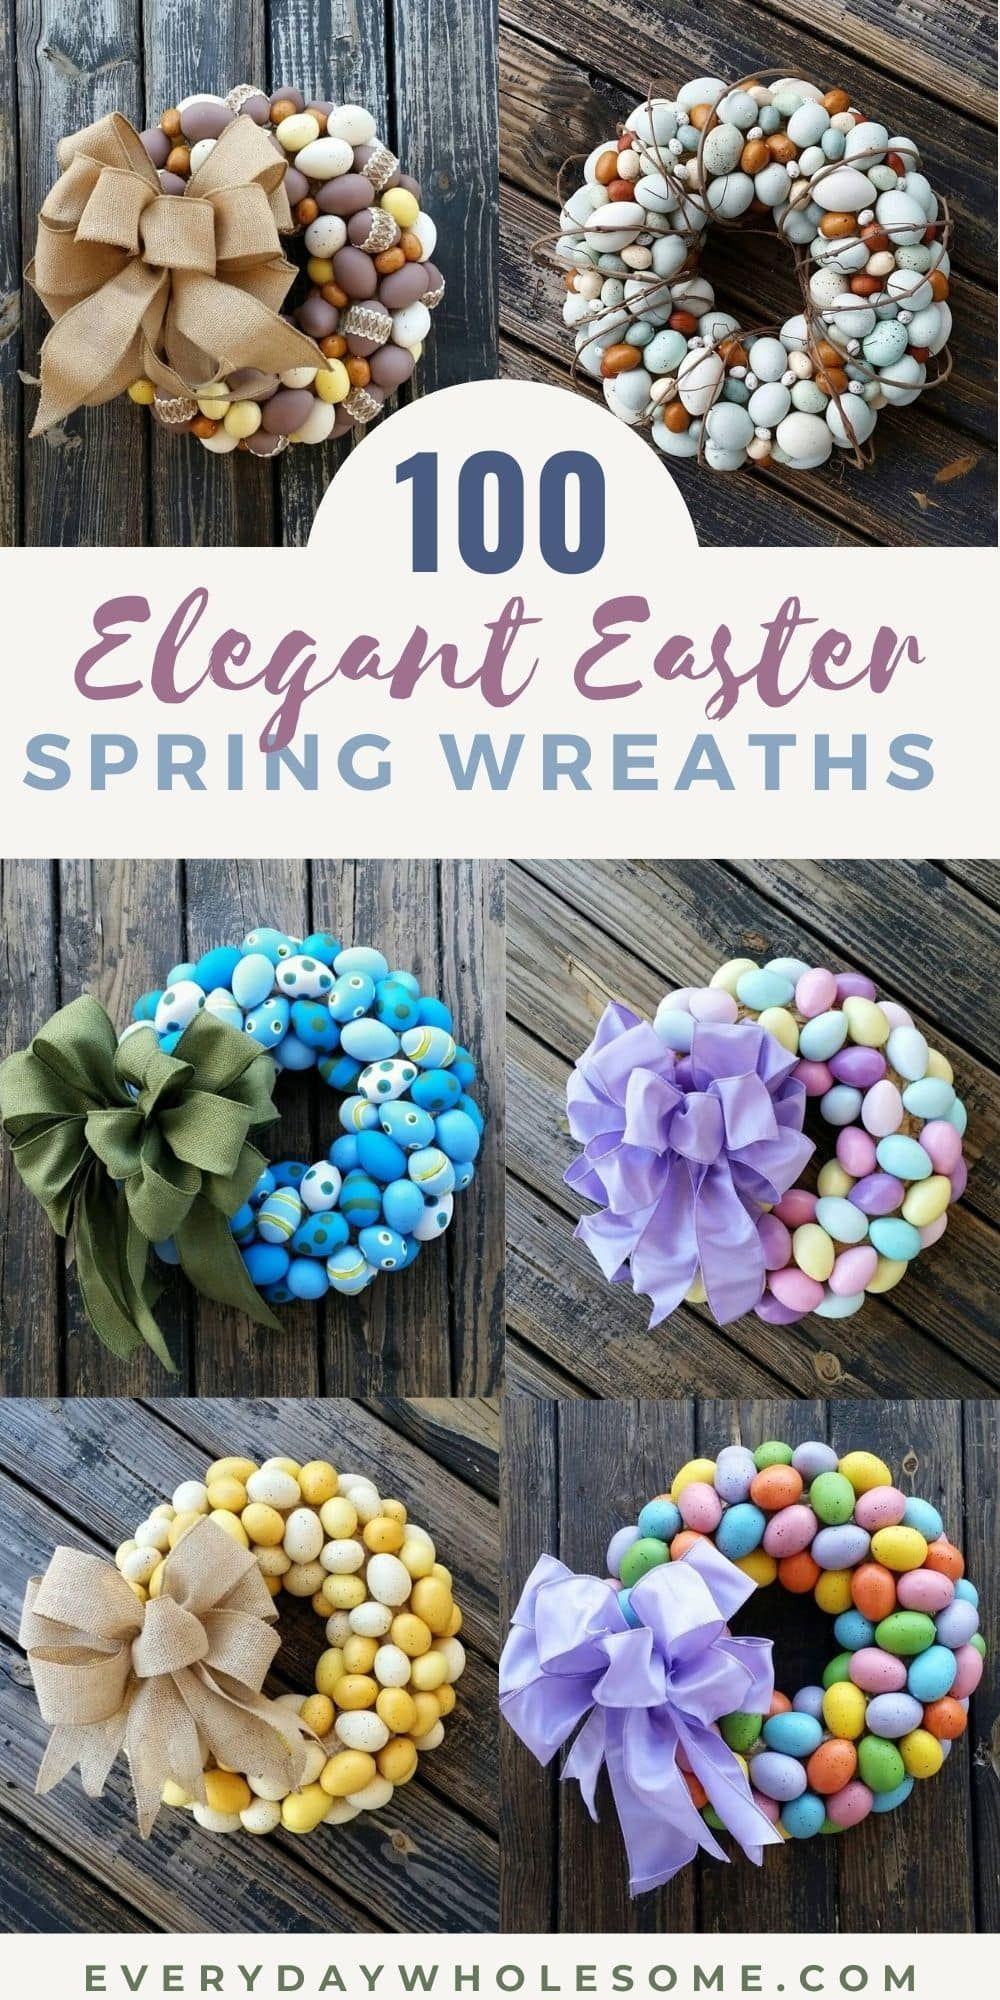 60 It S A Spring Thing Ideas In 2021 Recipes Spring Recipes Cooking Recipes